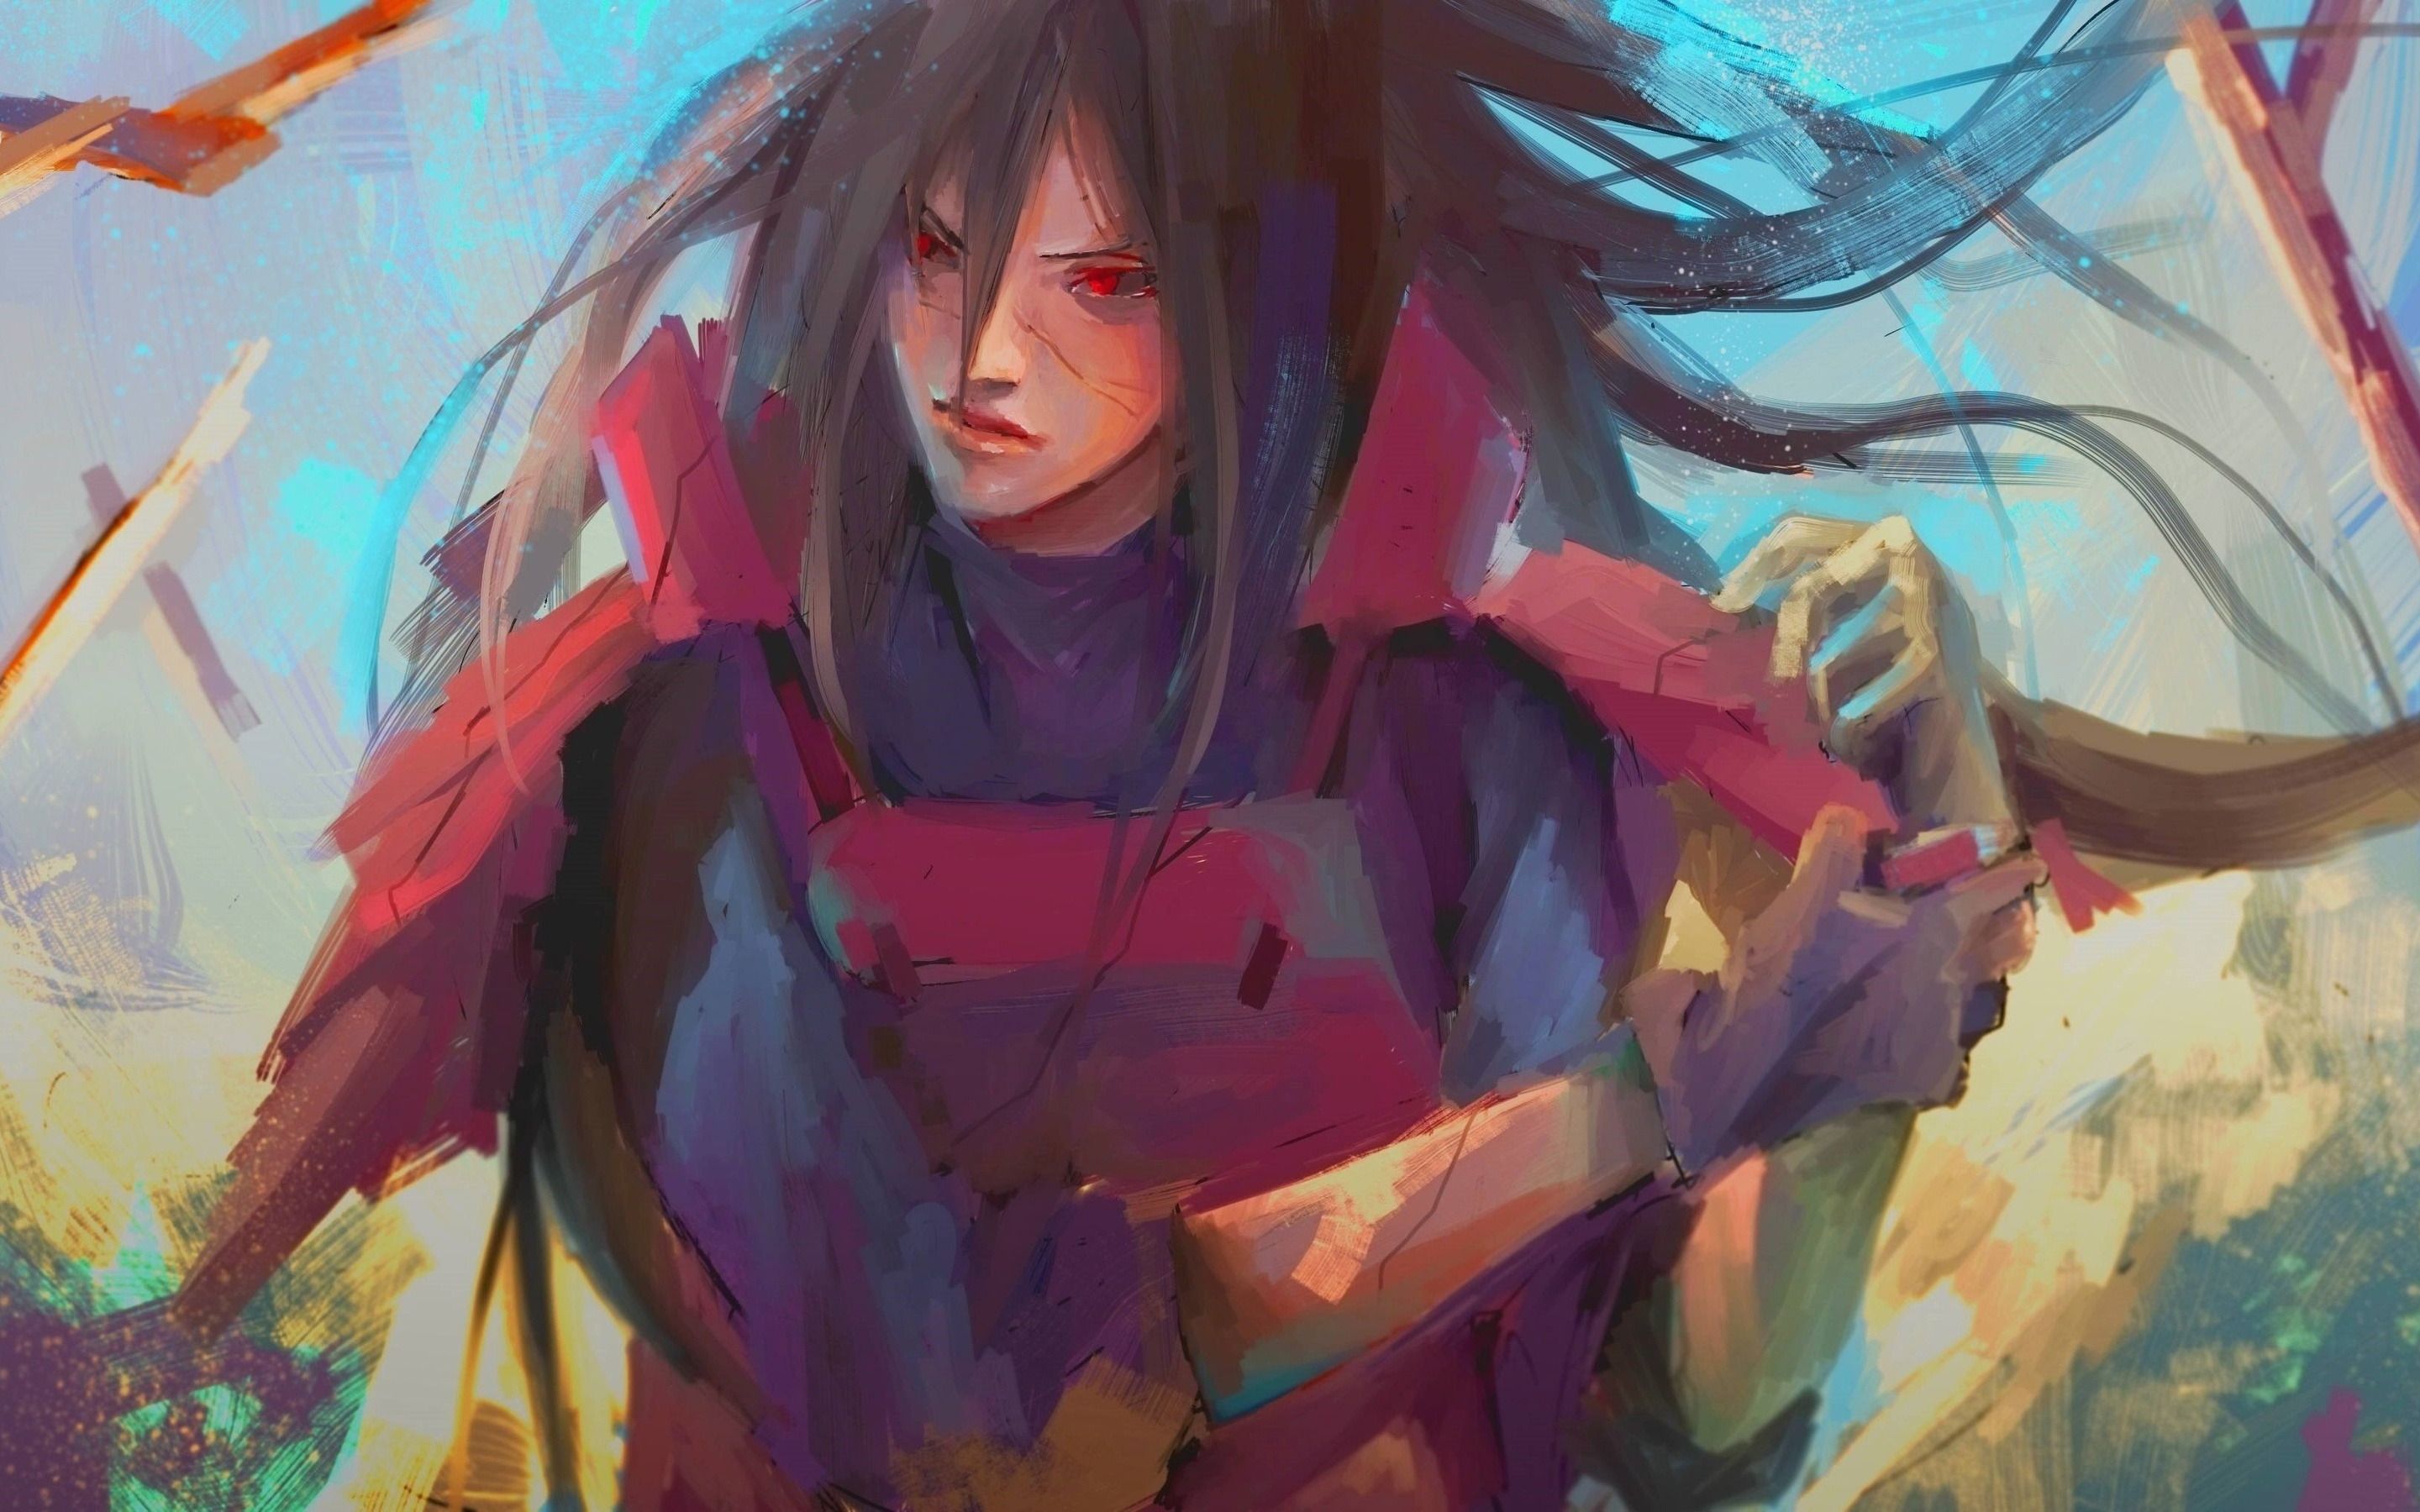 2880x1800 Madara Uchiha Naruto Macbook Pro Retina Hd 4k Wallpapers Images Backgrounds Photos And Pictures